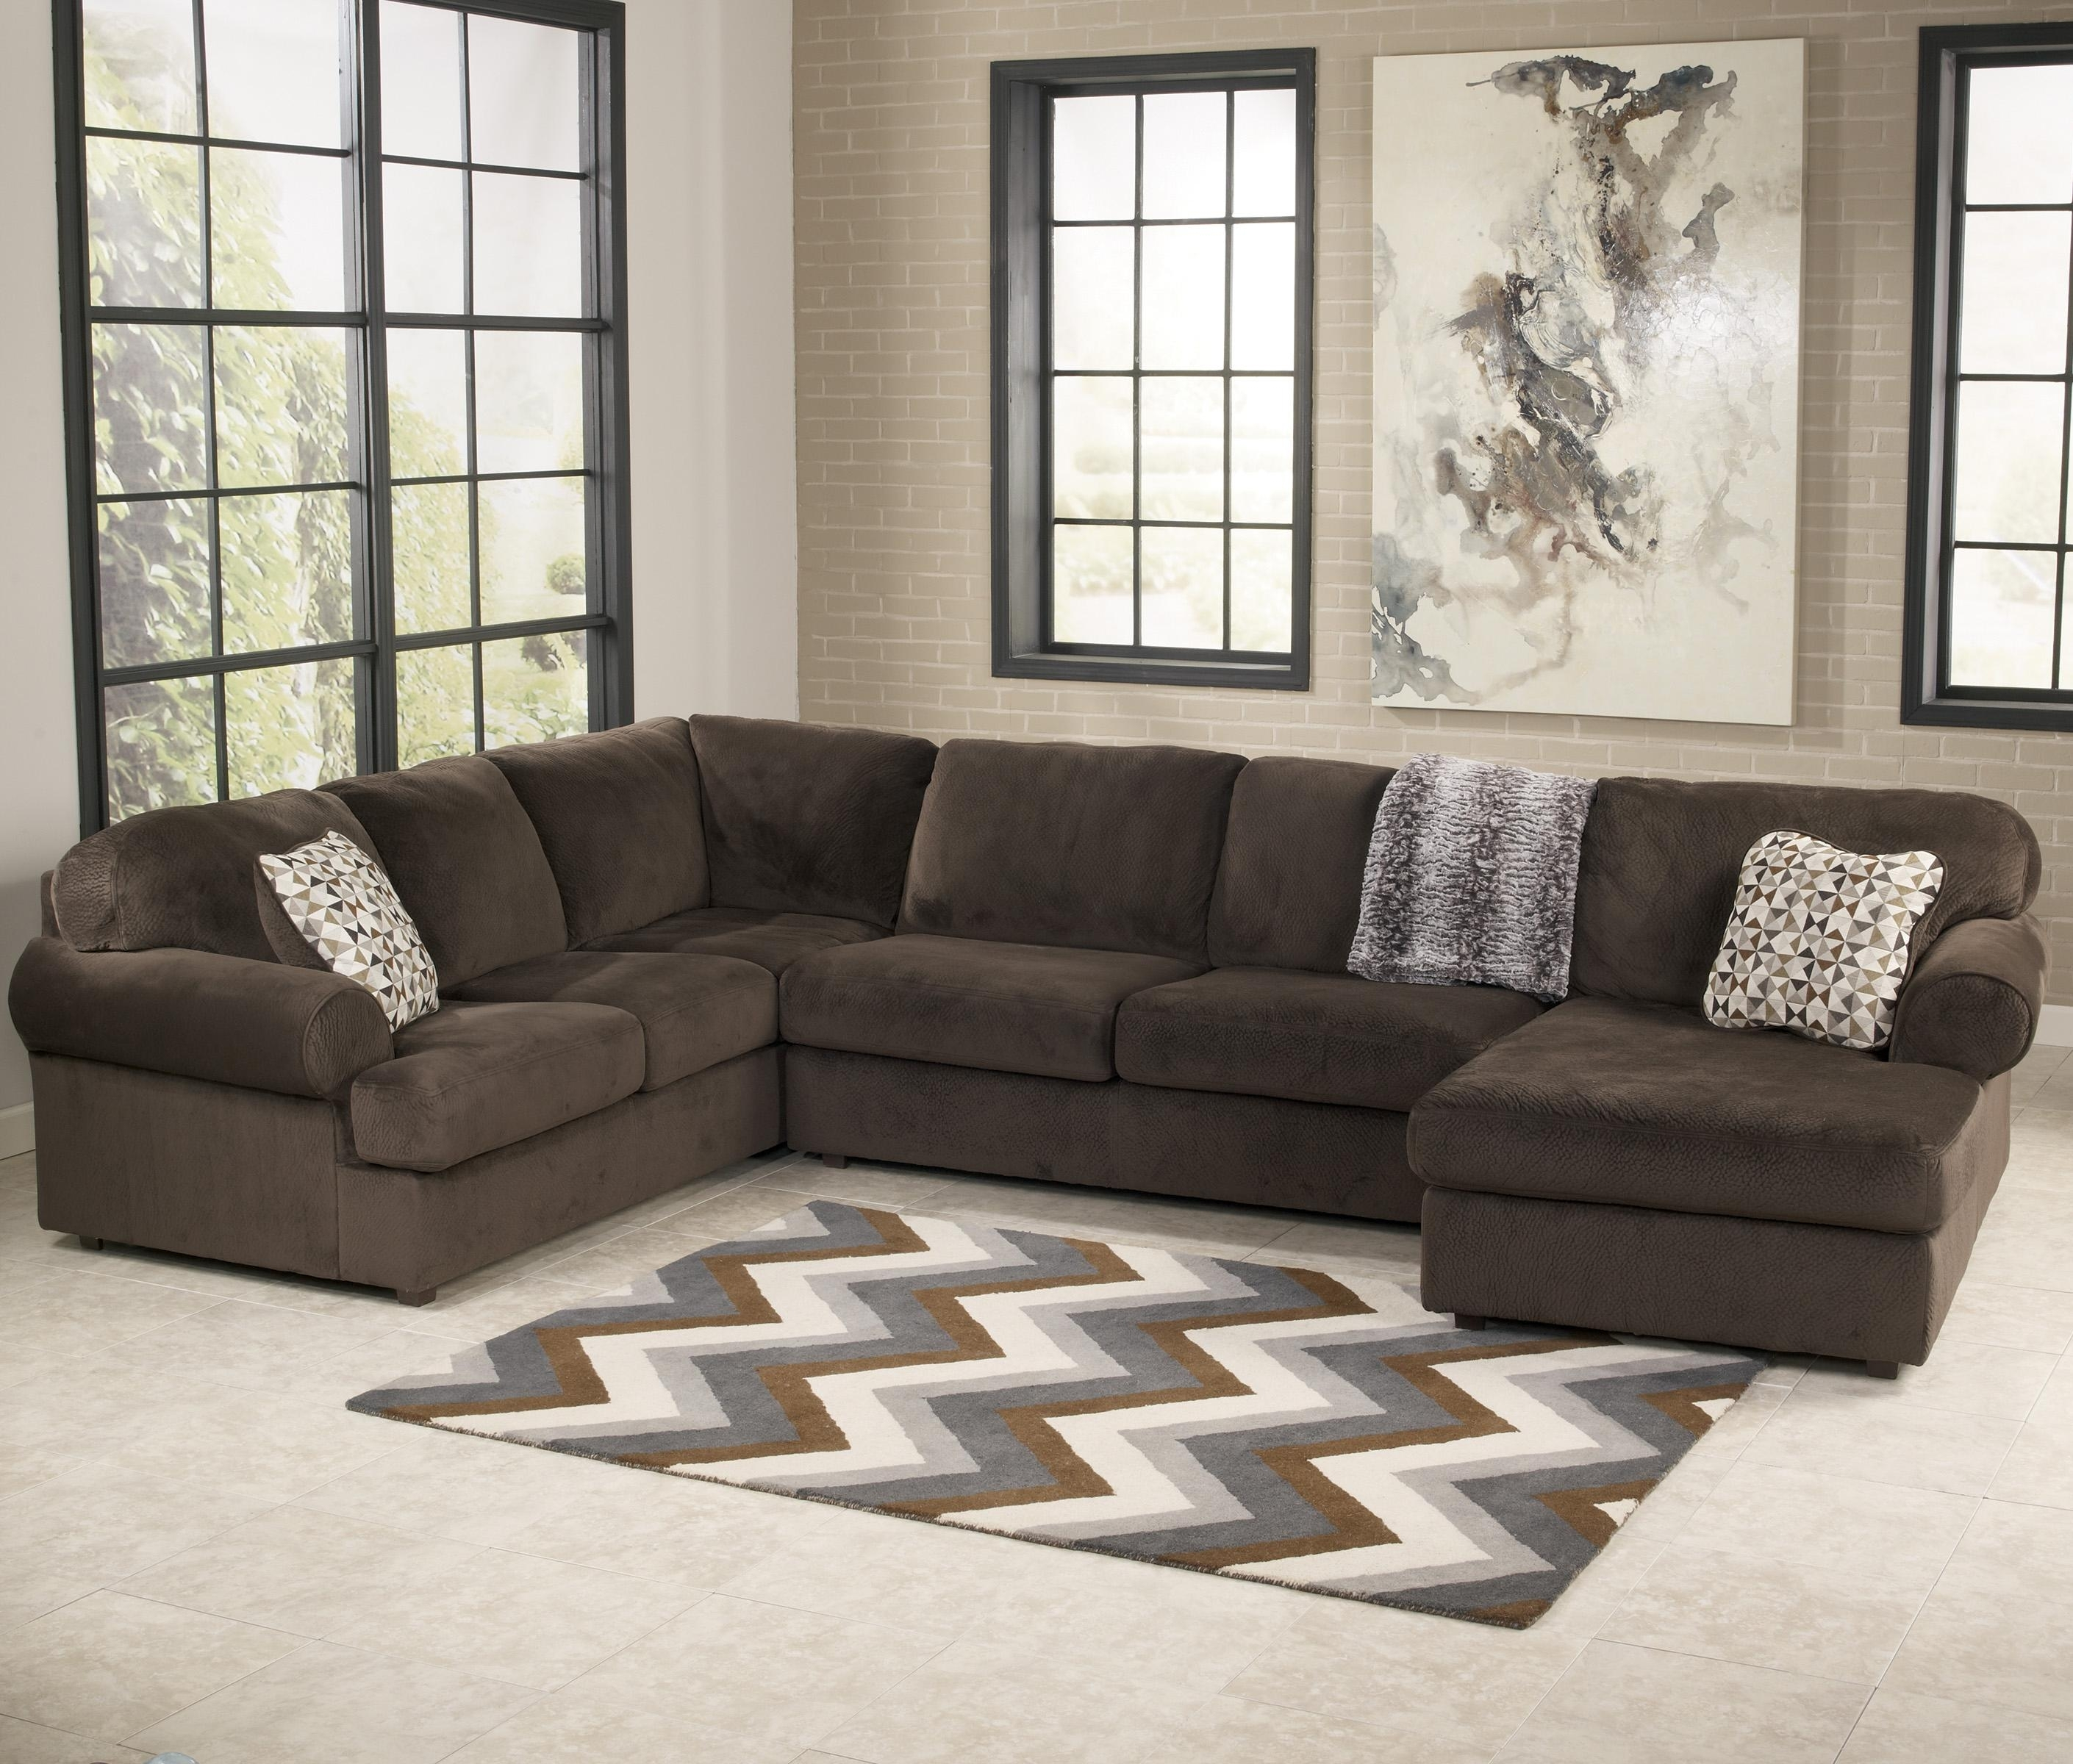 Right Sectional Sofa Sven Intuition Gray Scandinavian Furniture Hand throughout Regina Sectional Sofas (Image 10 of 10)